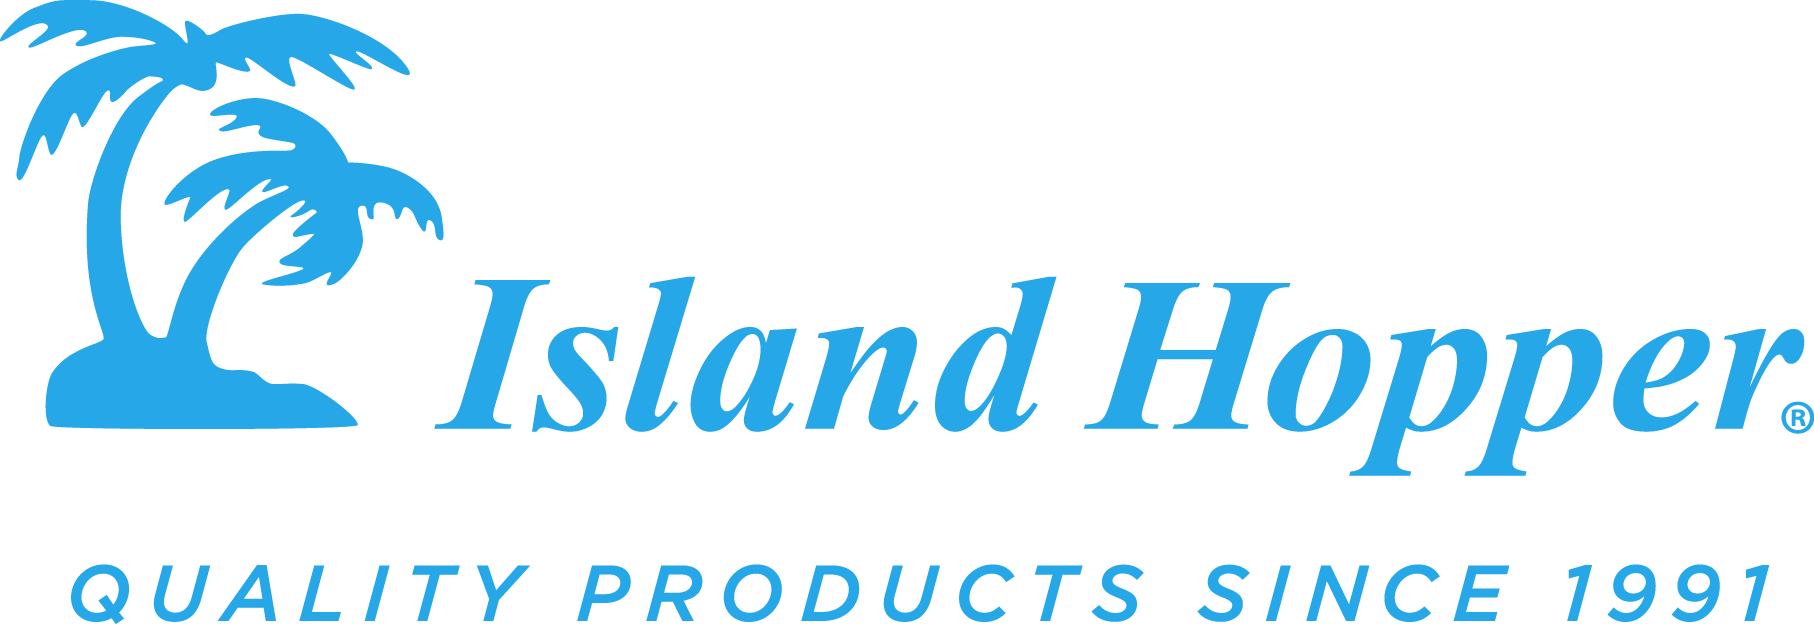 Island Hopper Quality Water Sport Products Since 1991